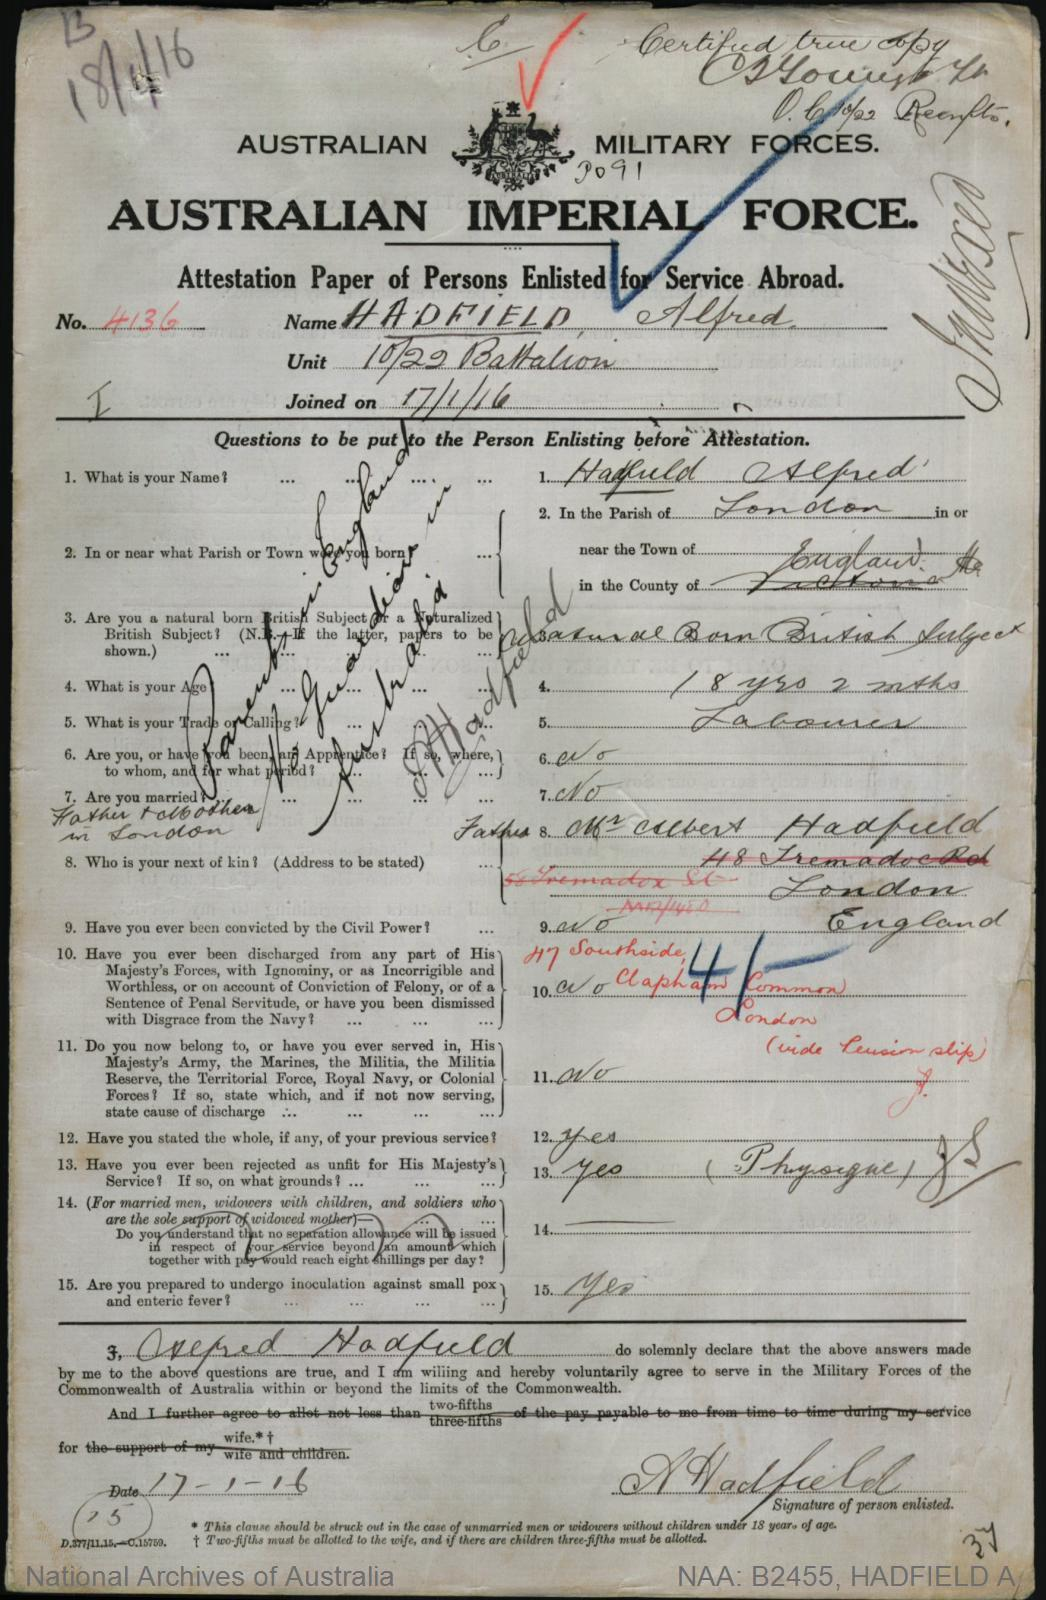 HADFIELD Alfred : Service Number - 4136 : Place of Birth - London England : Place of Enlistment - Melbourne VIC : Next of Kin - (Father) HADFIELD Albert